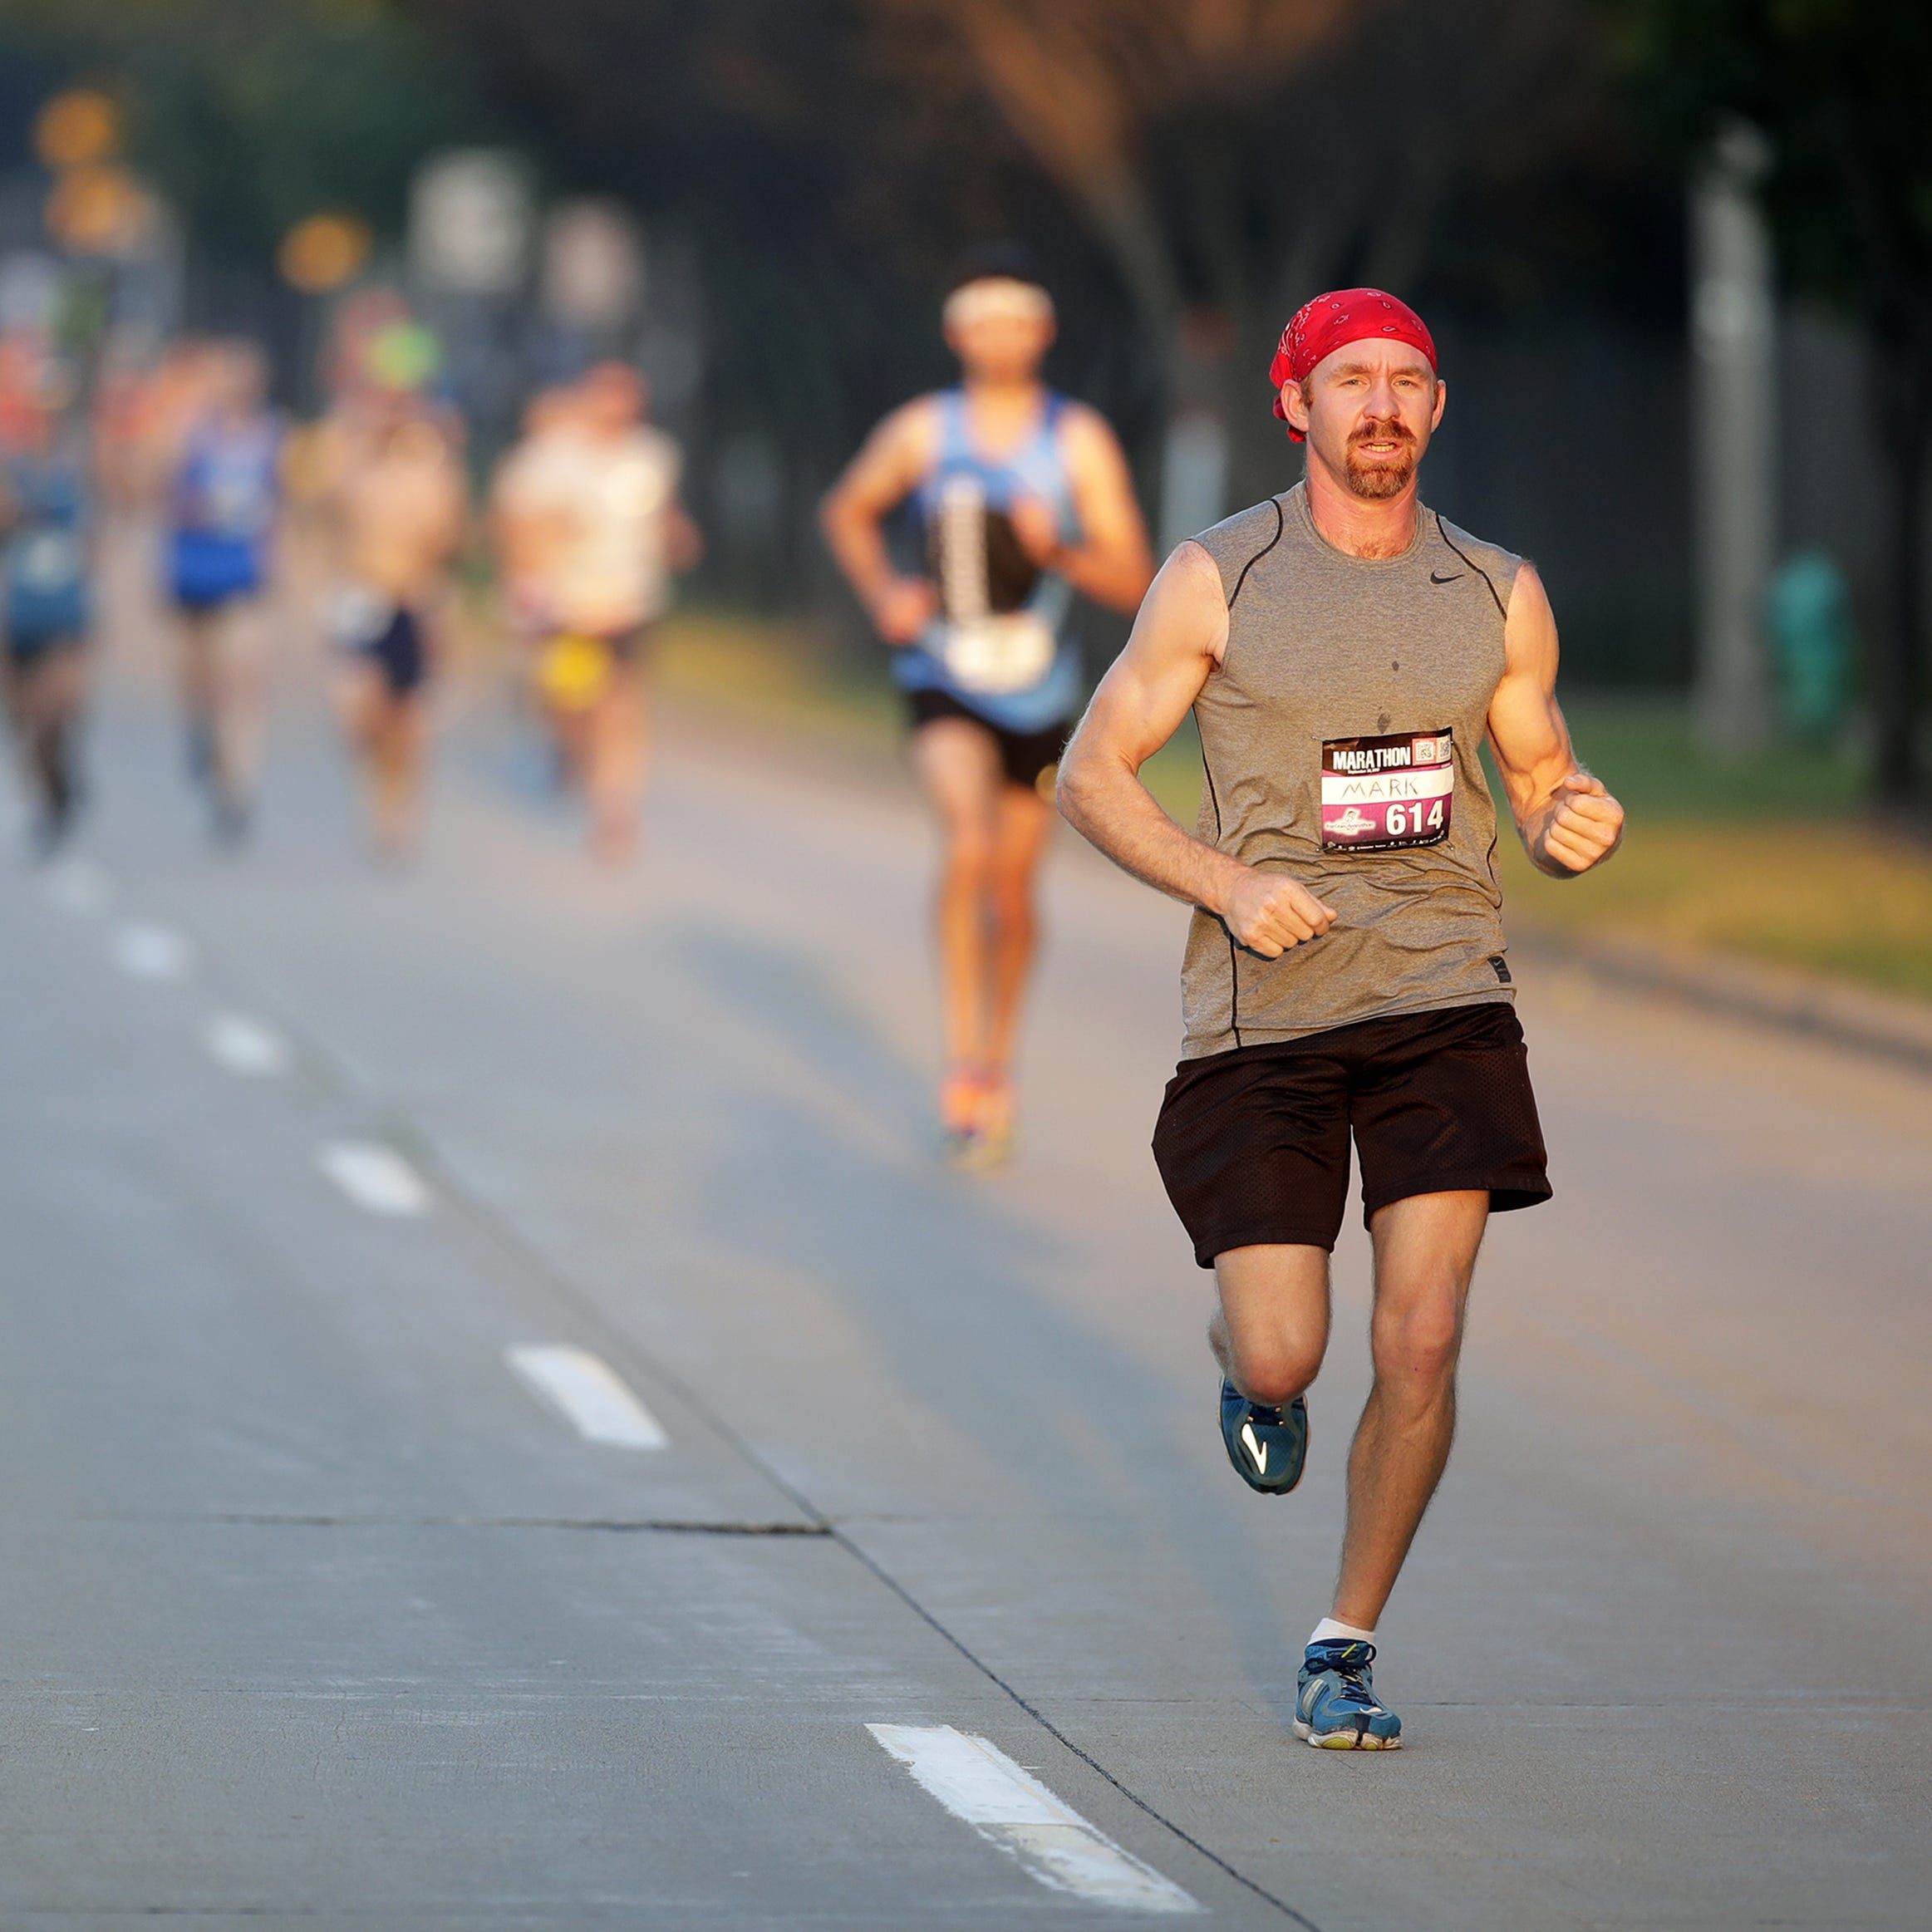 Fox Cities Marathon: Here's how this weekend's race will affect traffic in the area